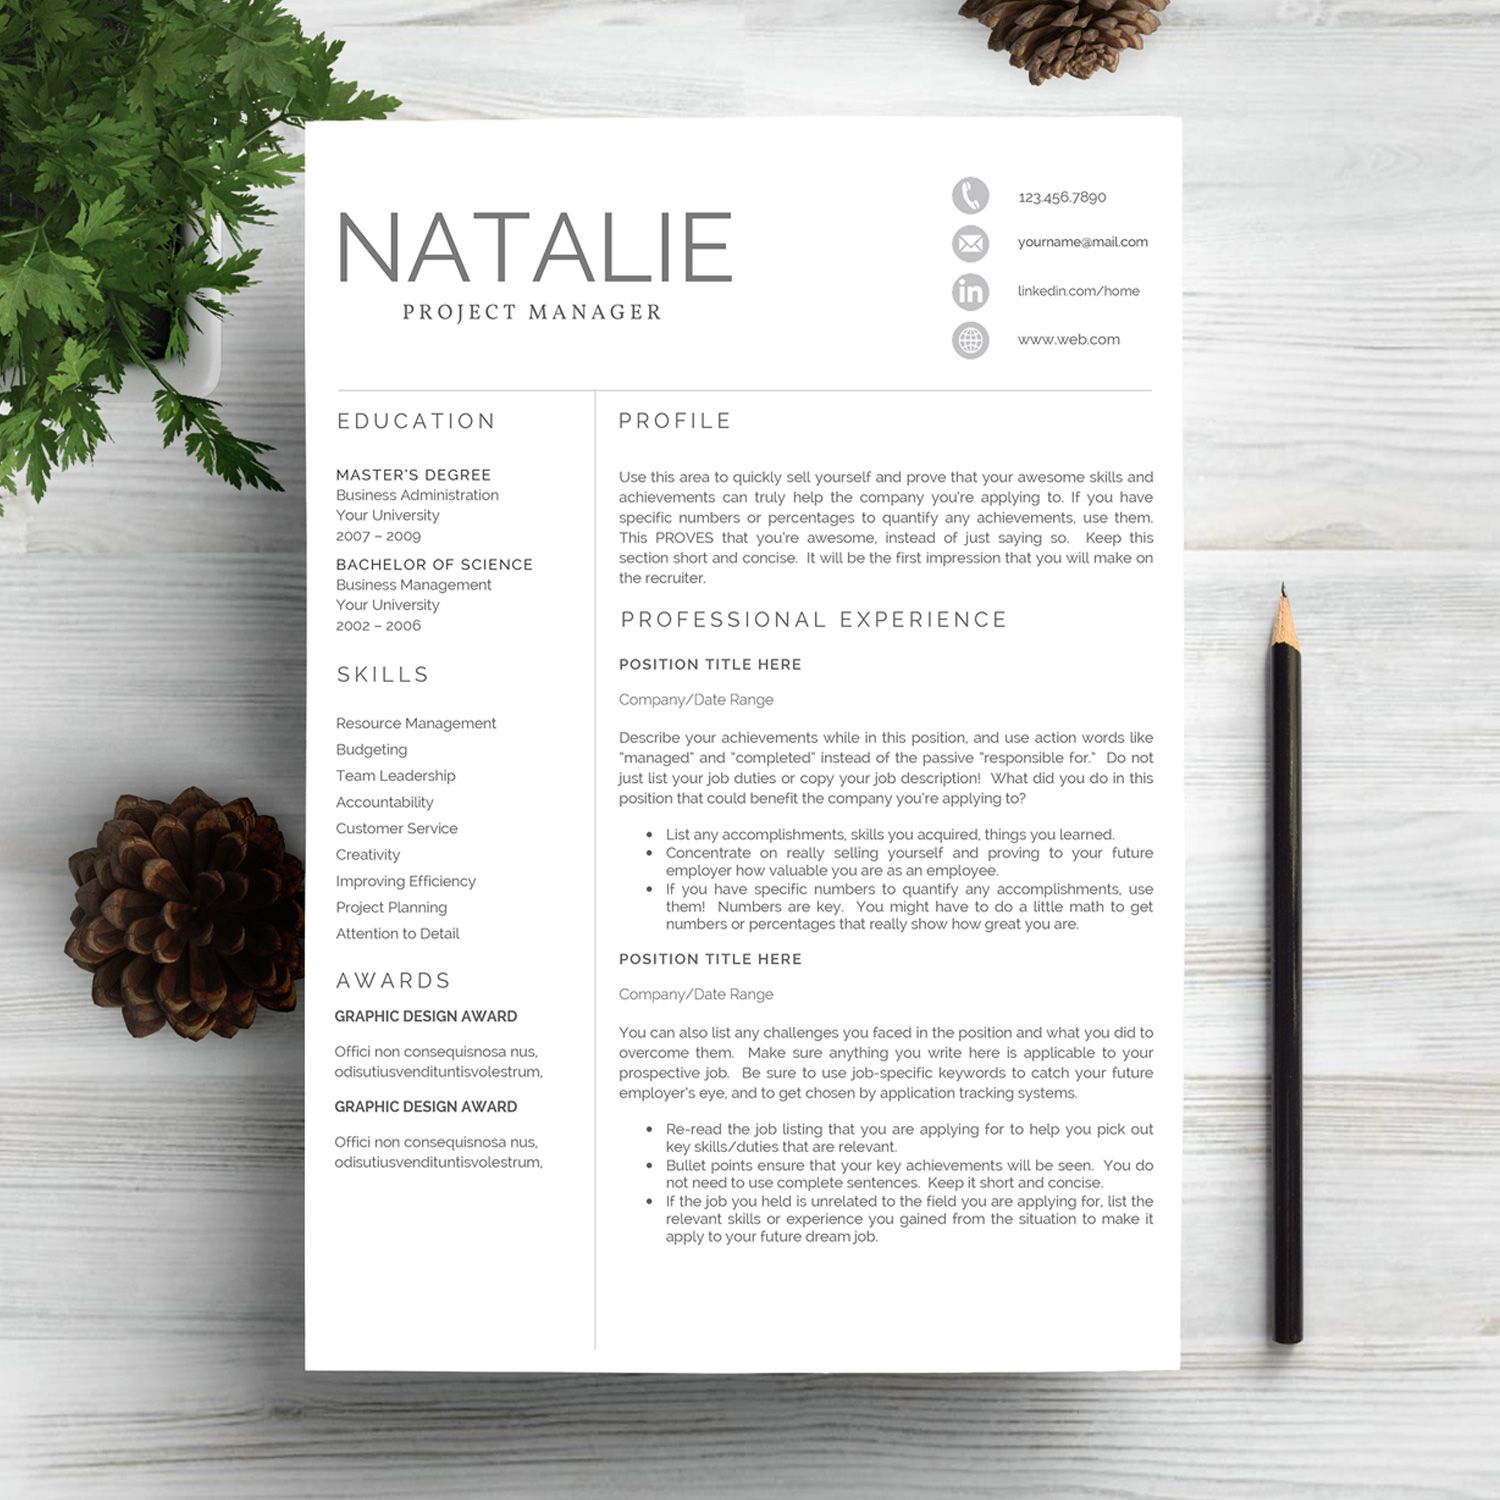 Resumes for Project Managers Of Professional Resume Template for Project Manager More